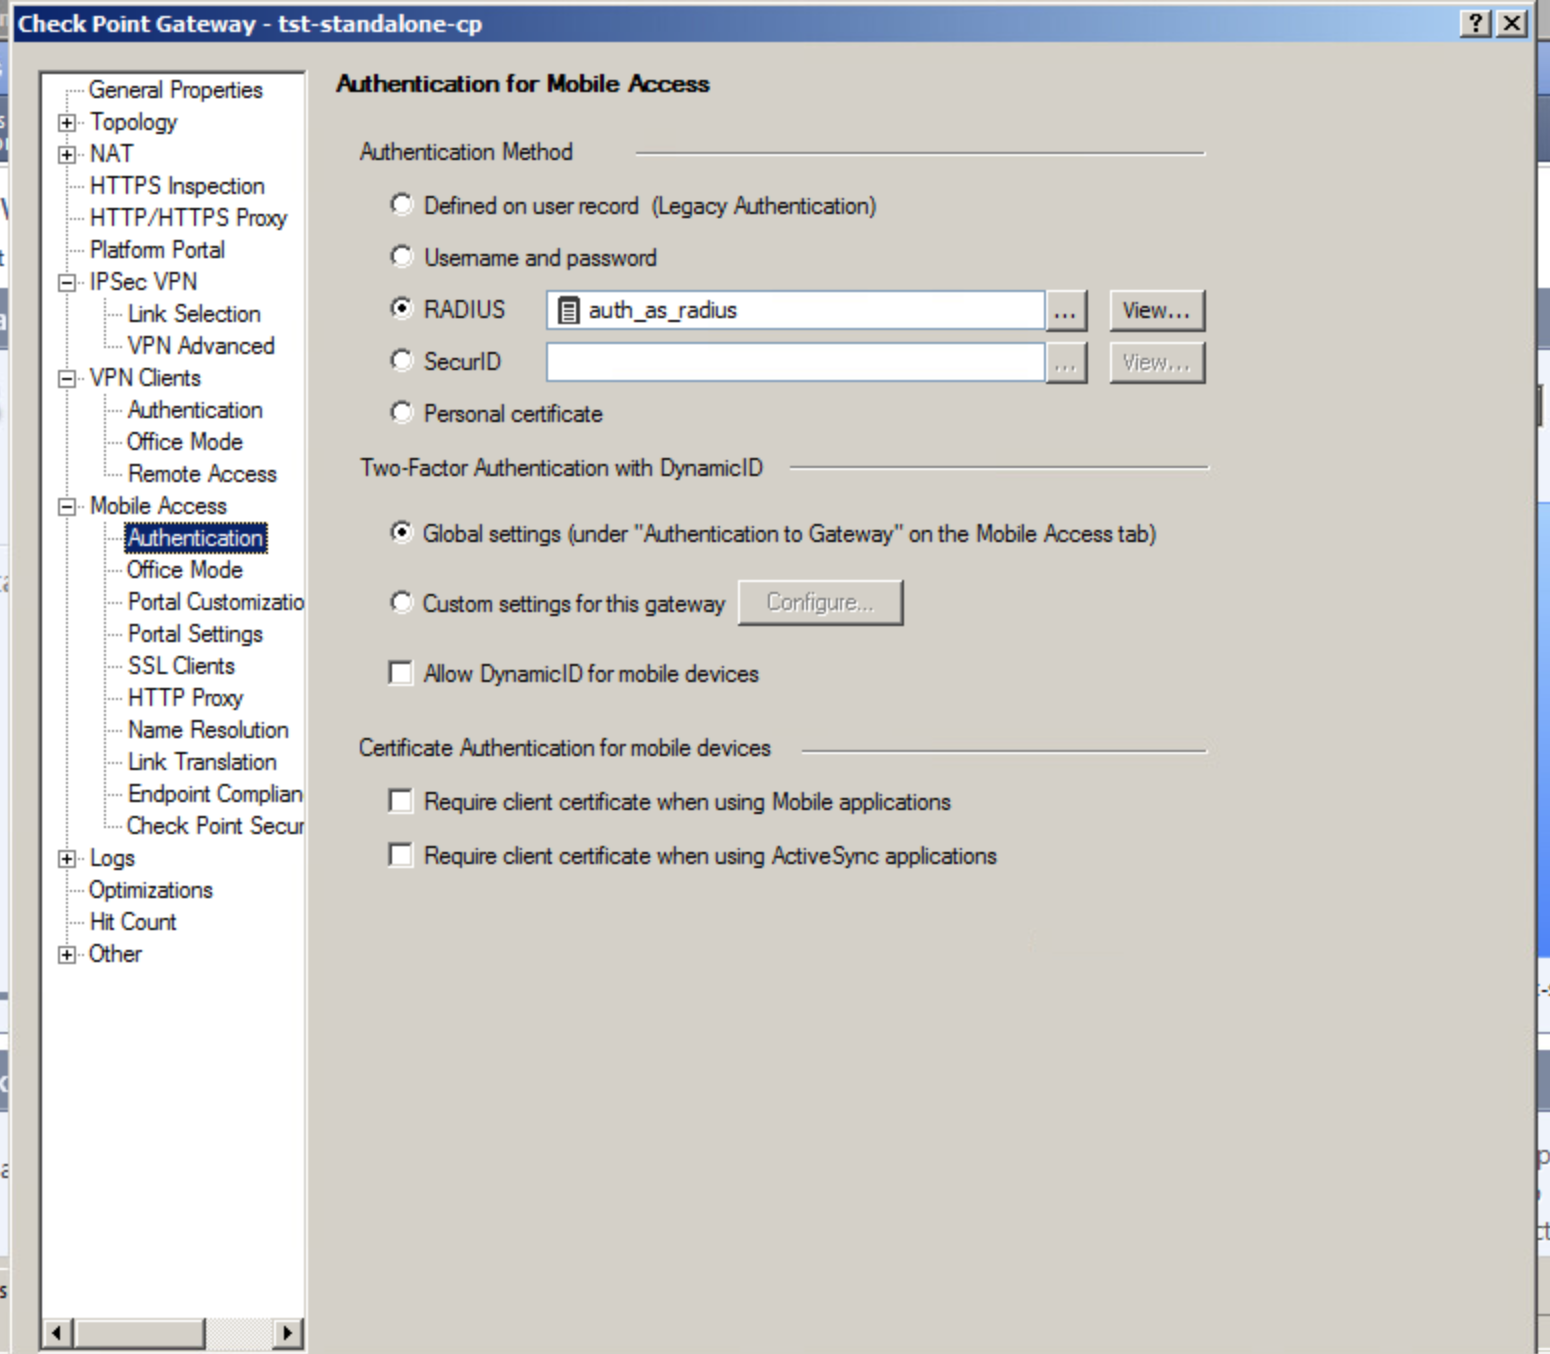 Integration with Checkpoint Mobile Access Blade / auth as